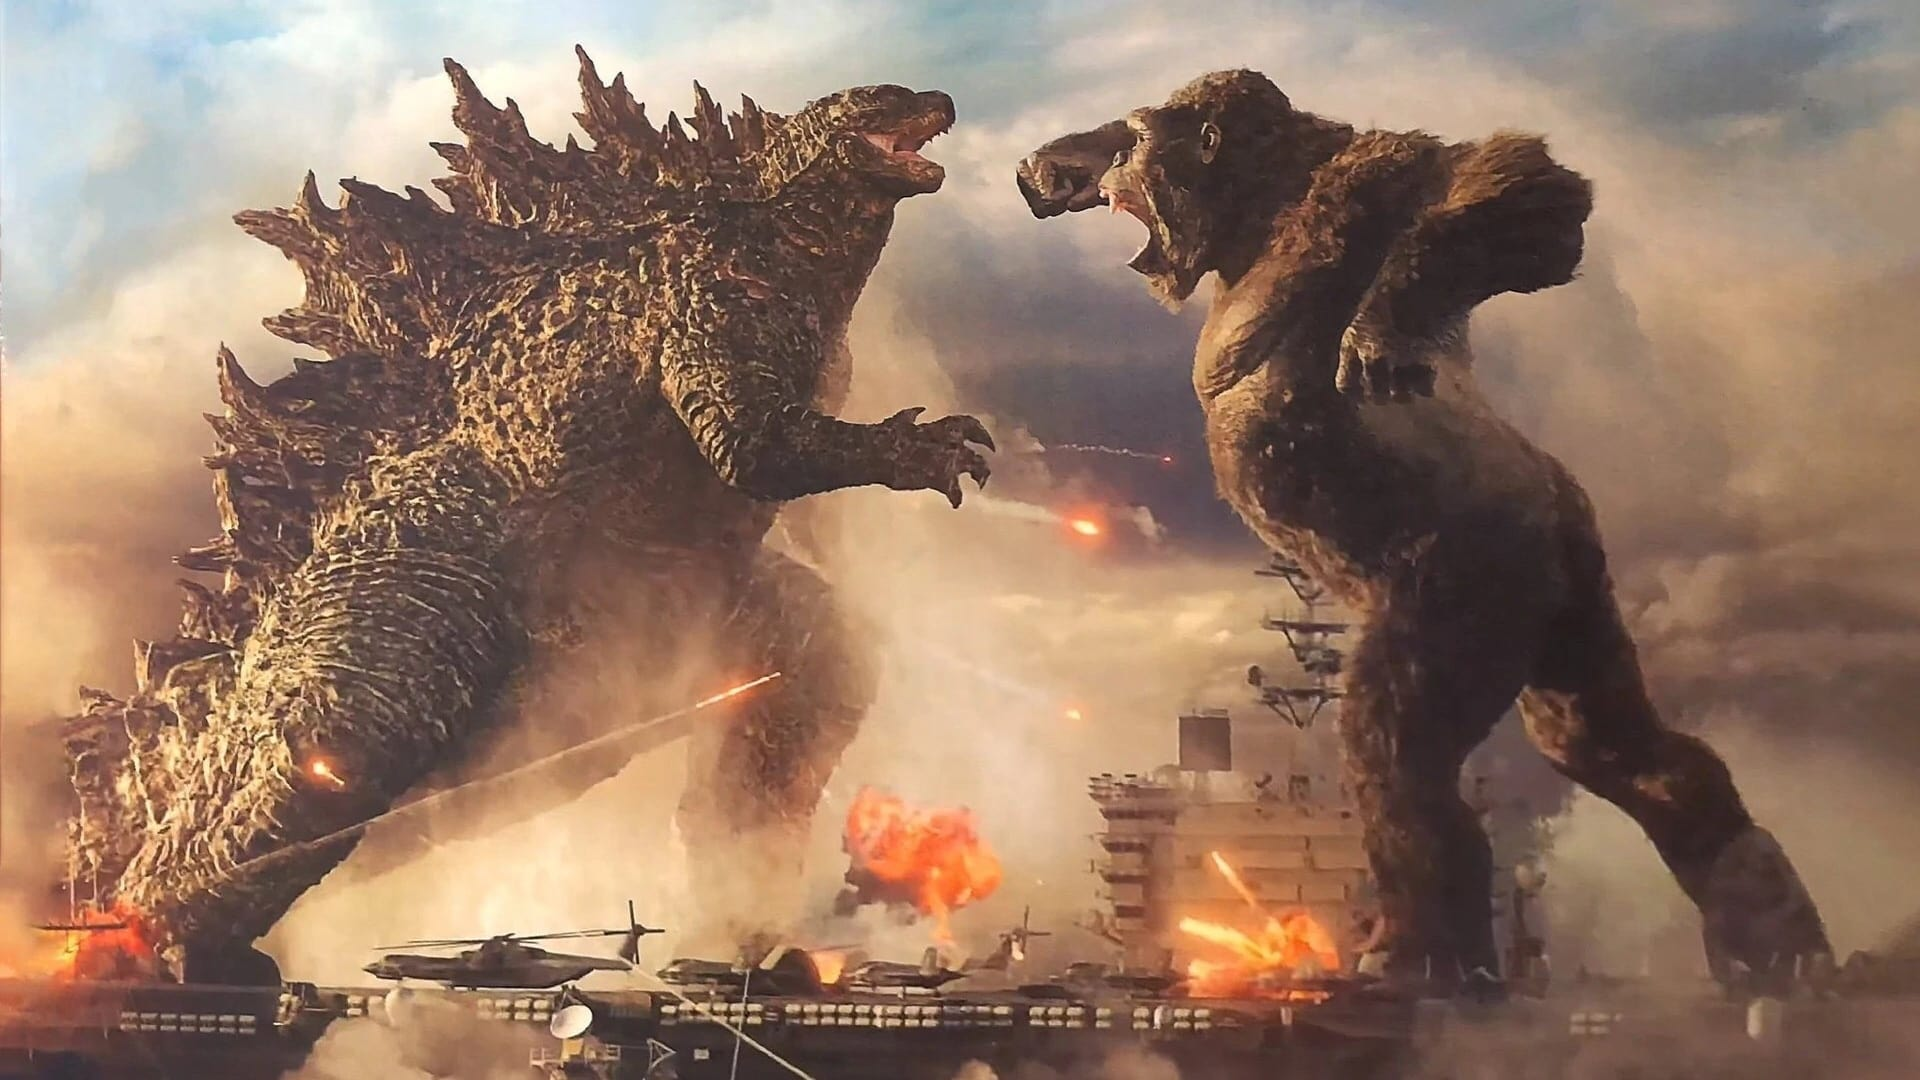 Kong and Godzilla duke it out in this first trailer